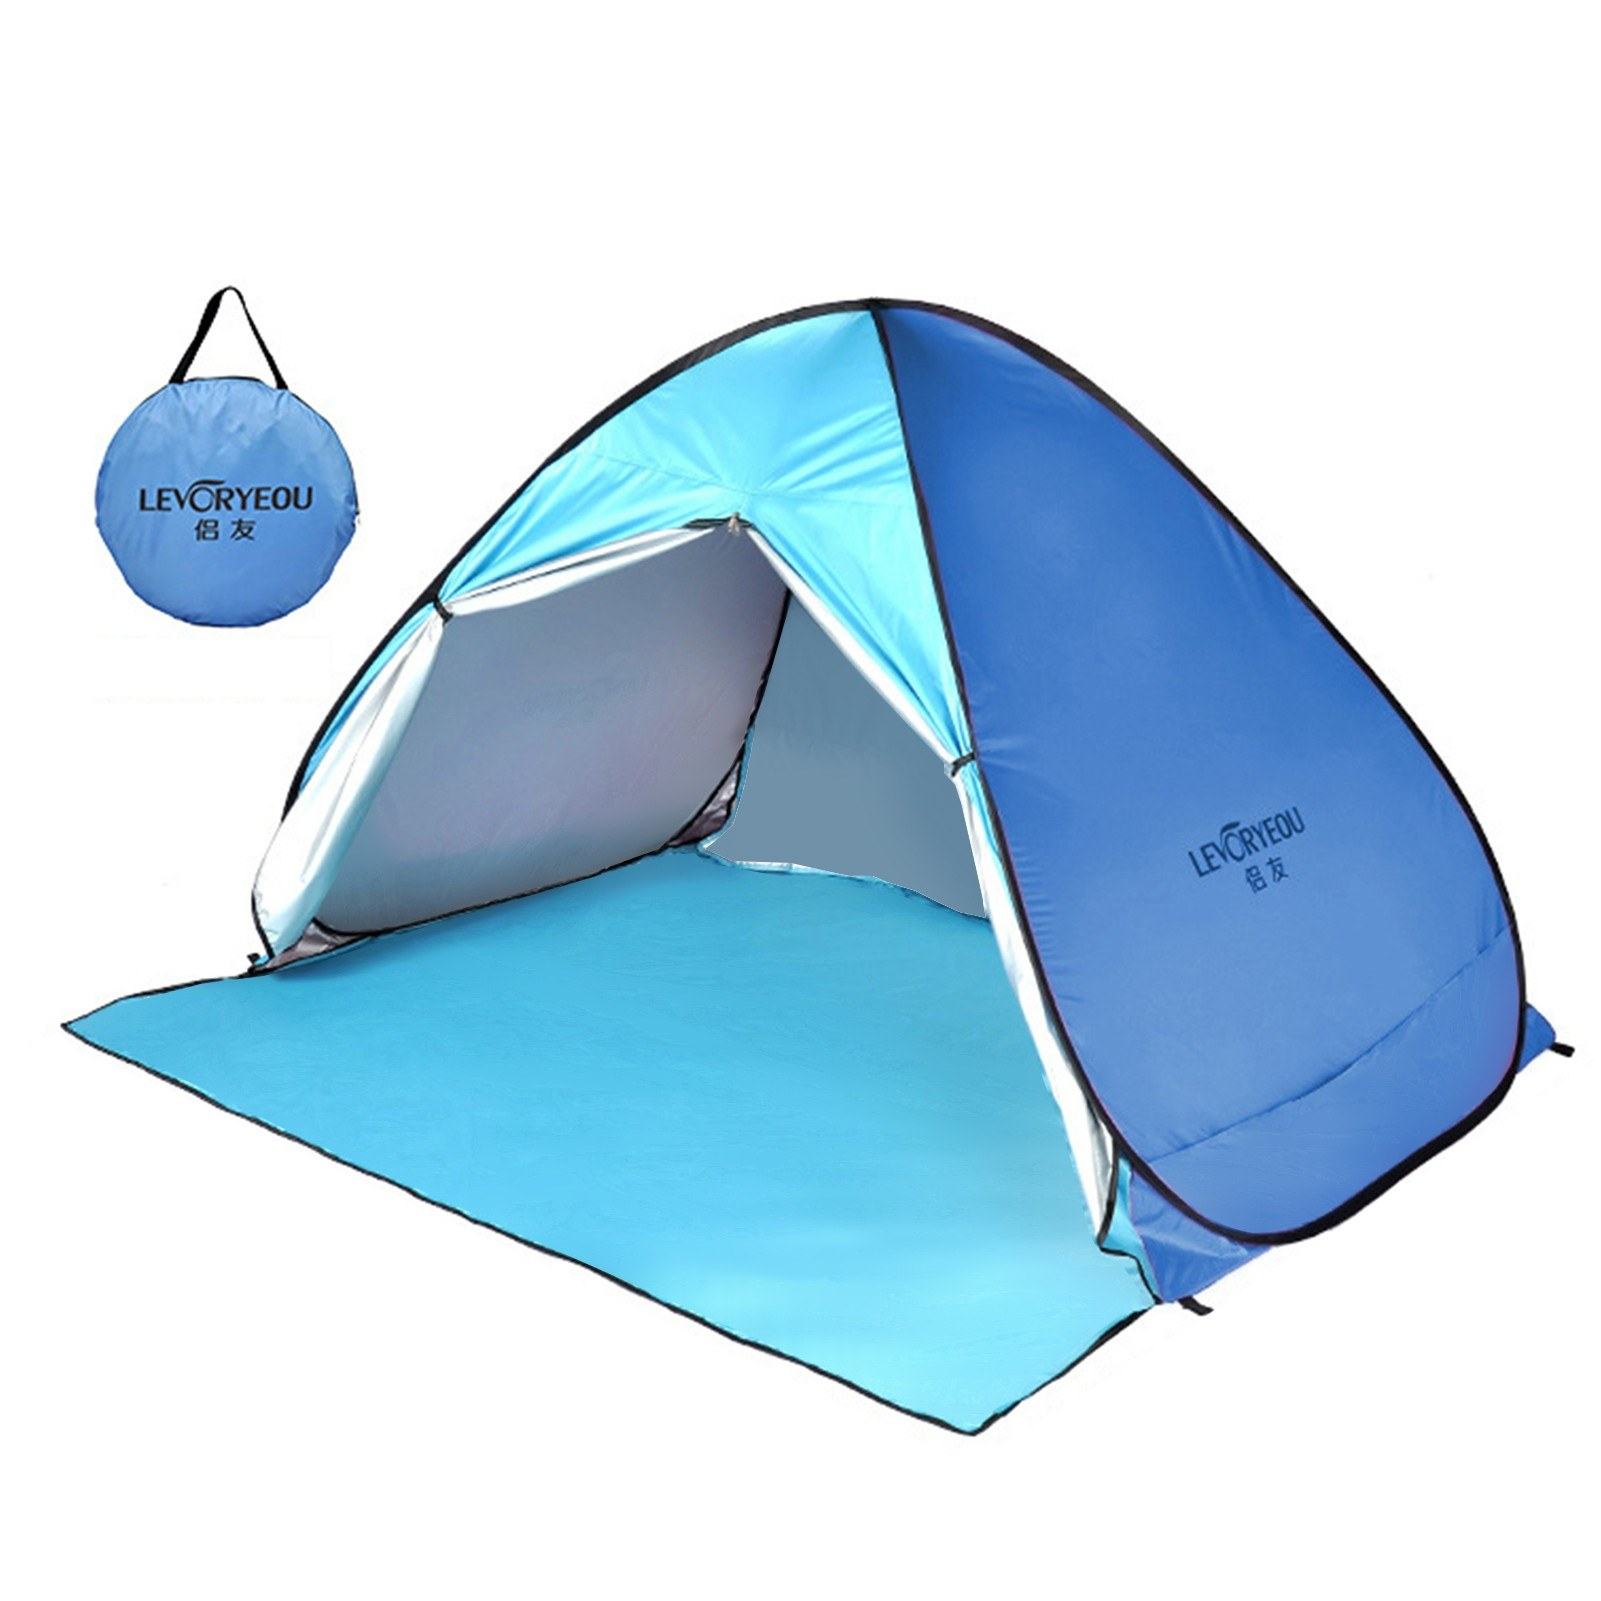 cafago.com - 67% OFF Outdoor Camping Tent Pop-up Fun-Play Tent,free shipping+$41.57